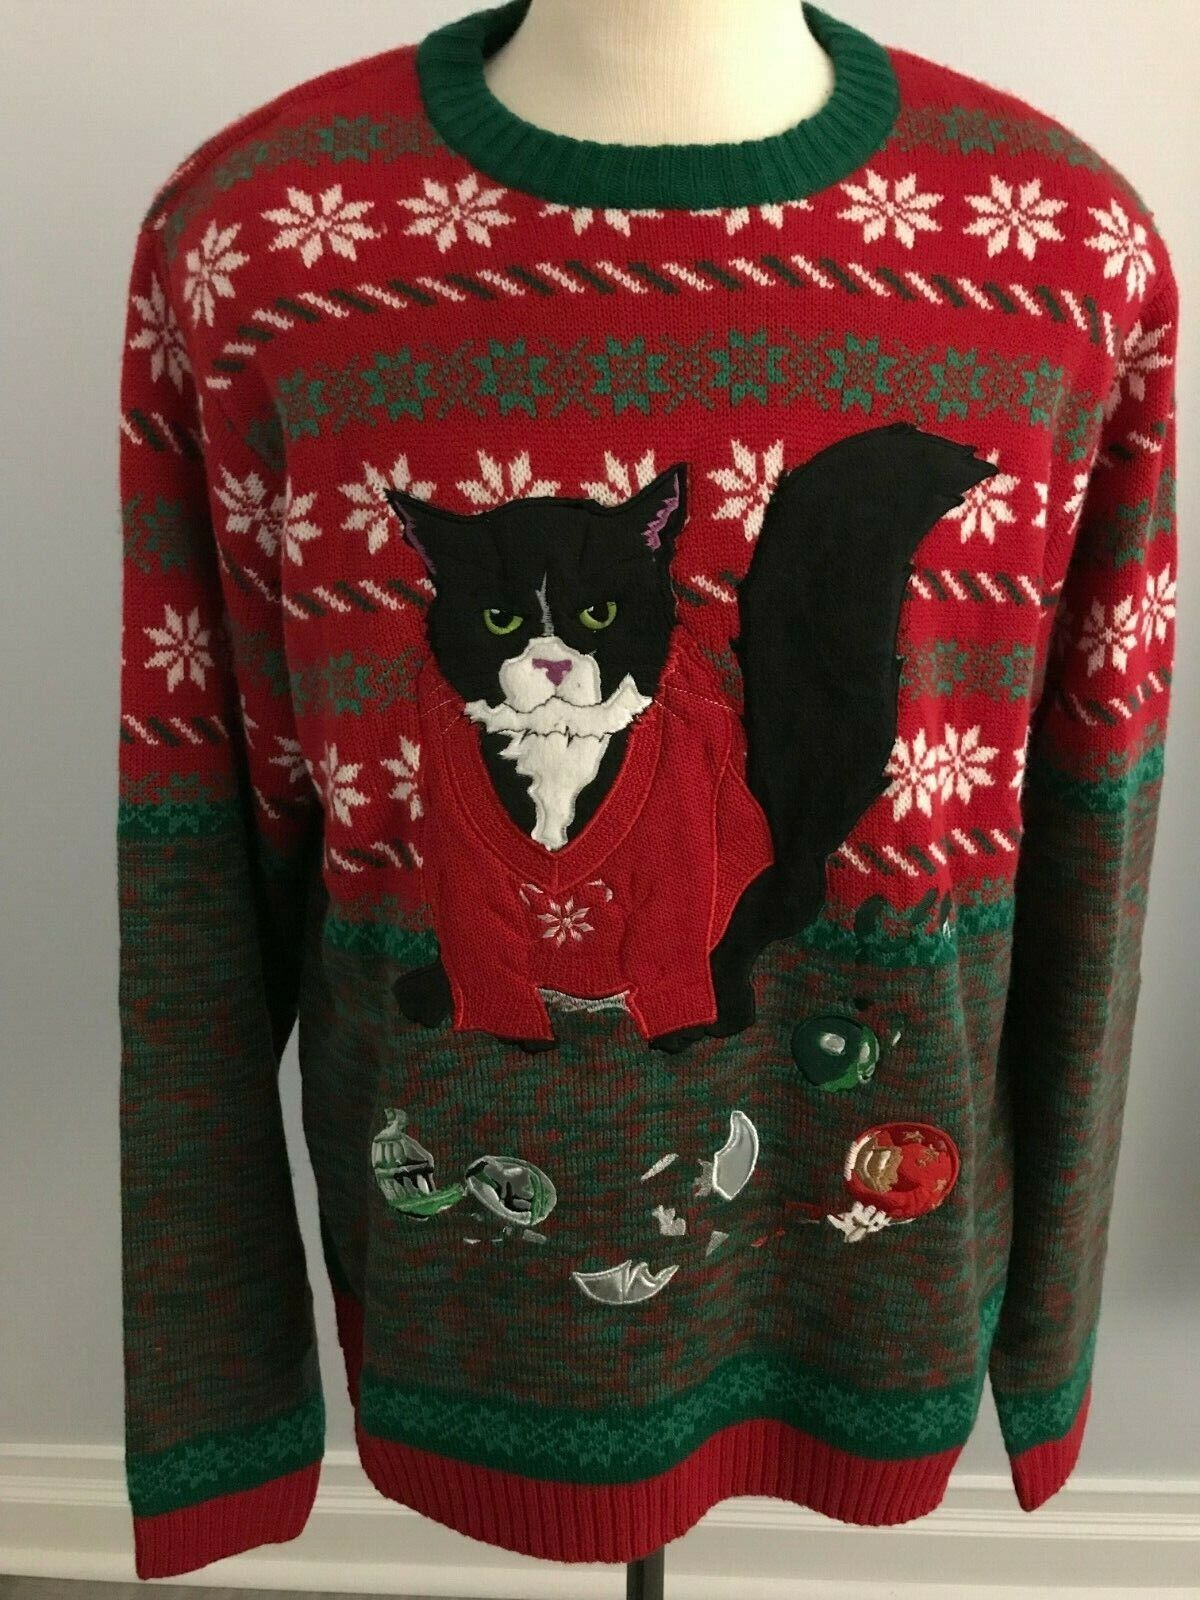 Cat w  Broken Ornaments Christmas Sweater - SZ  2XL - Green   Red   White